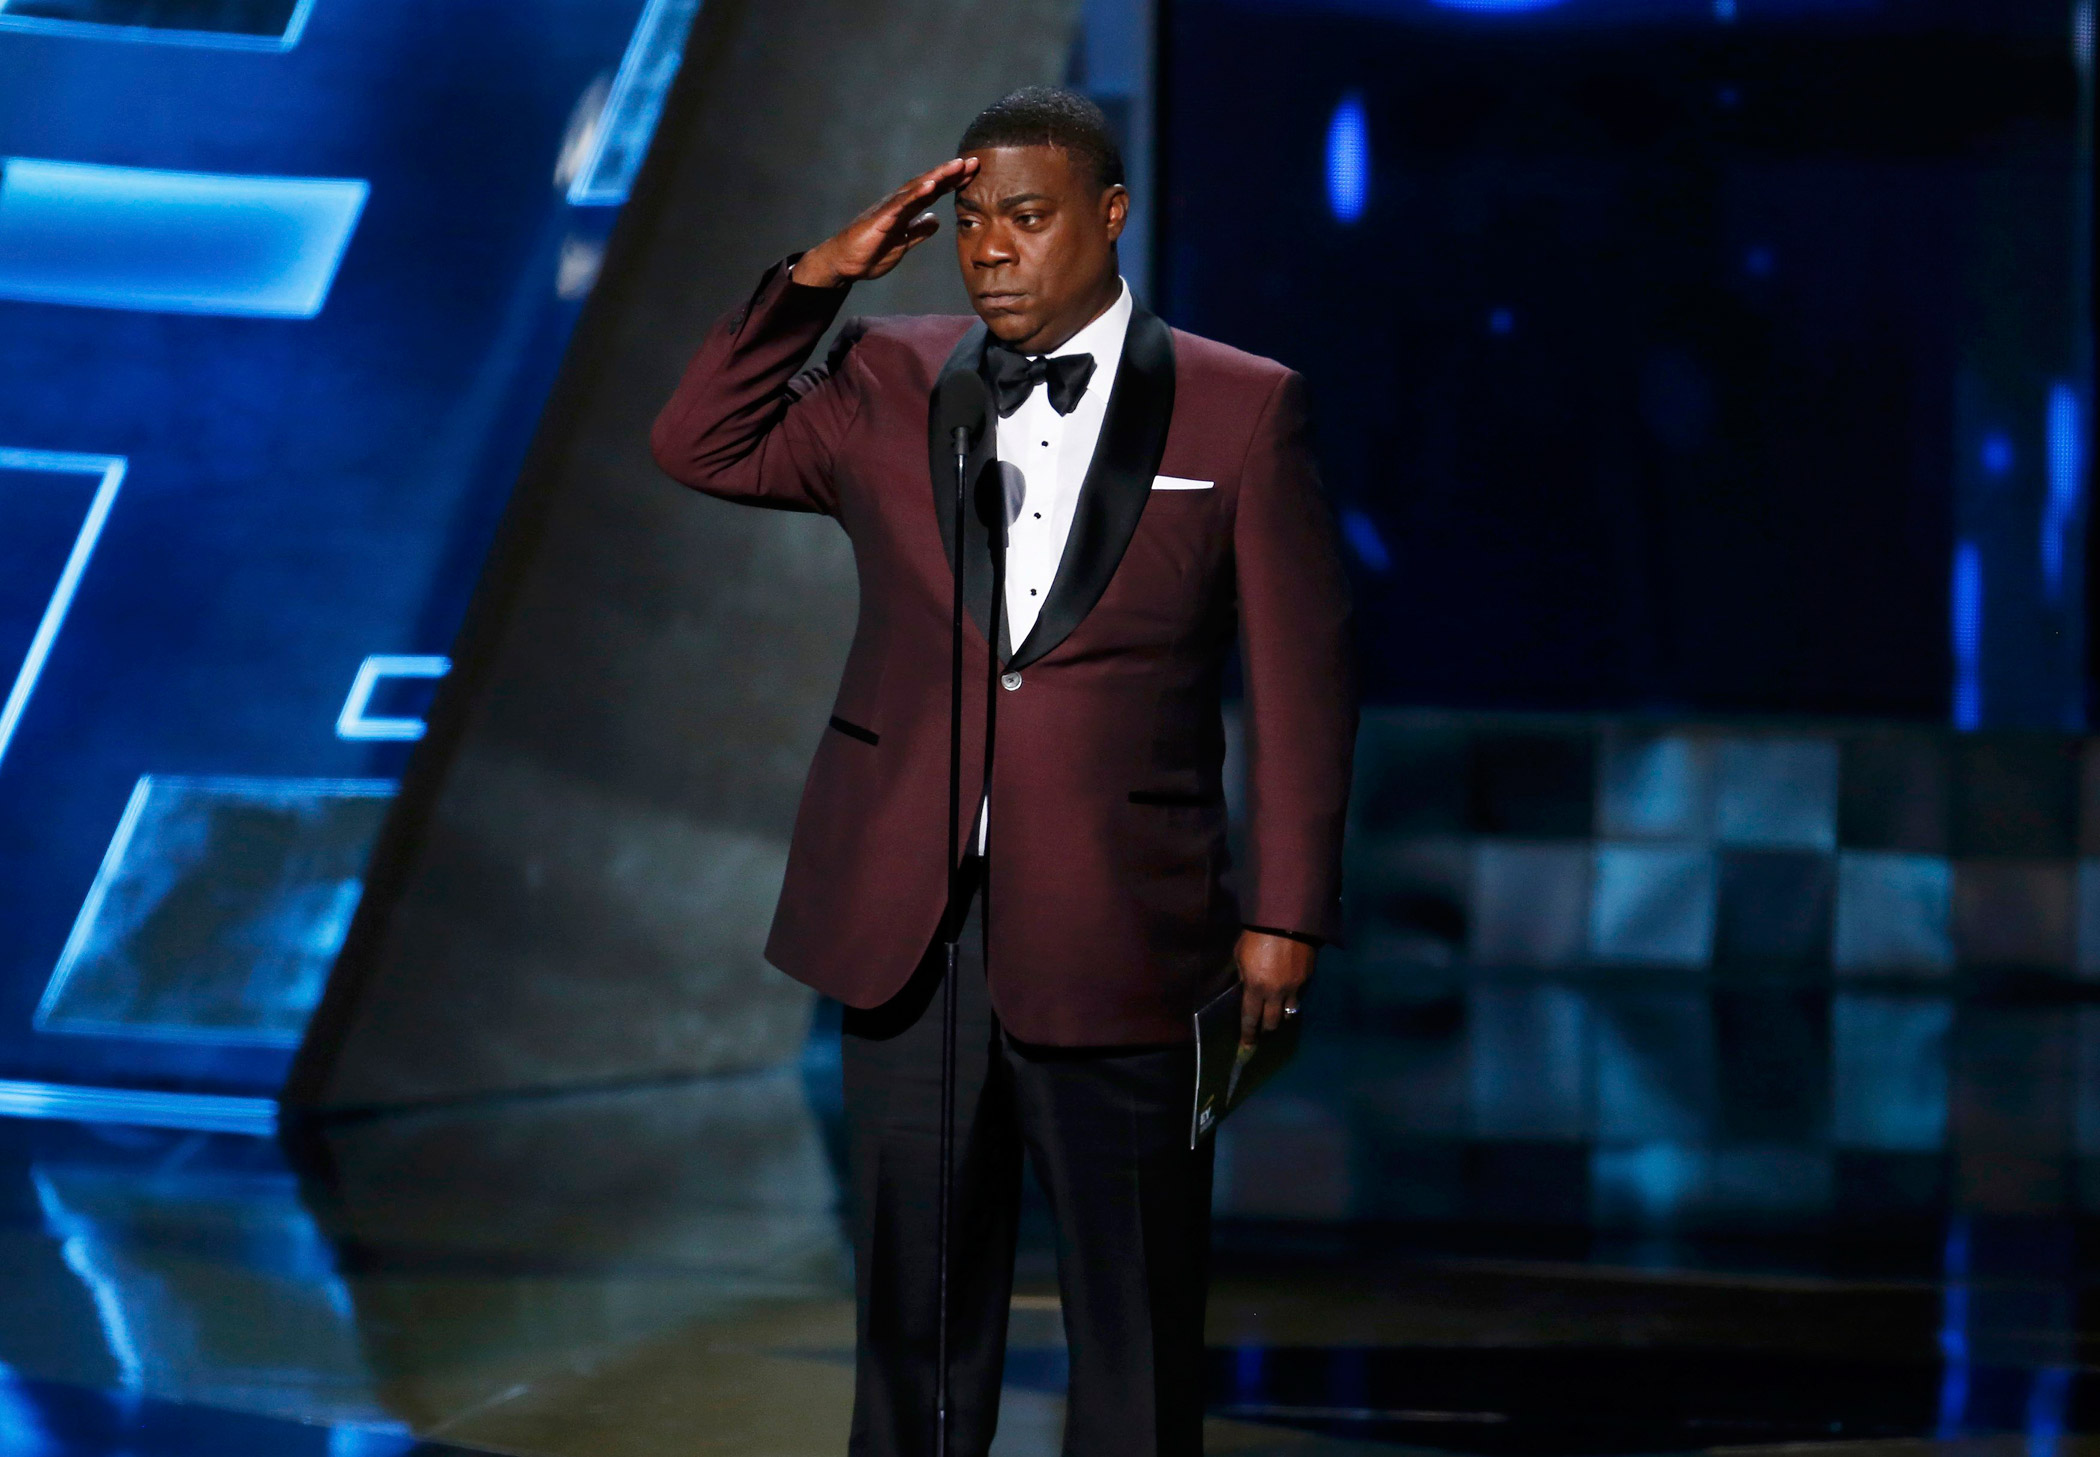 Tracy Morgan presents the Outstanding Drama Series award during the 67th Primetime Emmy Awards on Sept. 20, 2015 in Los Angeles.